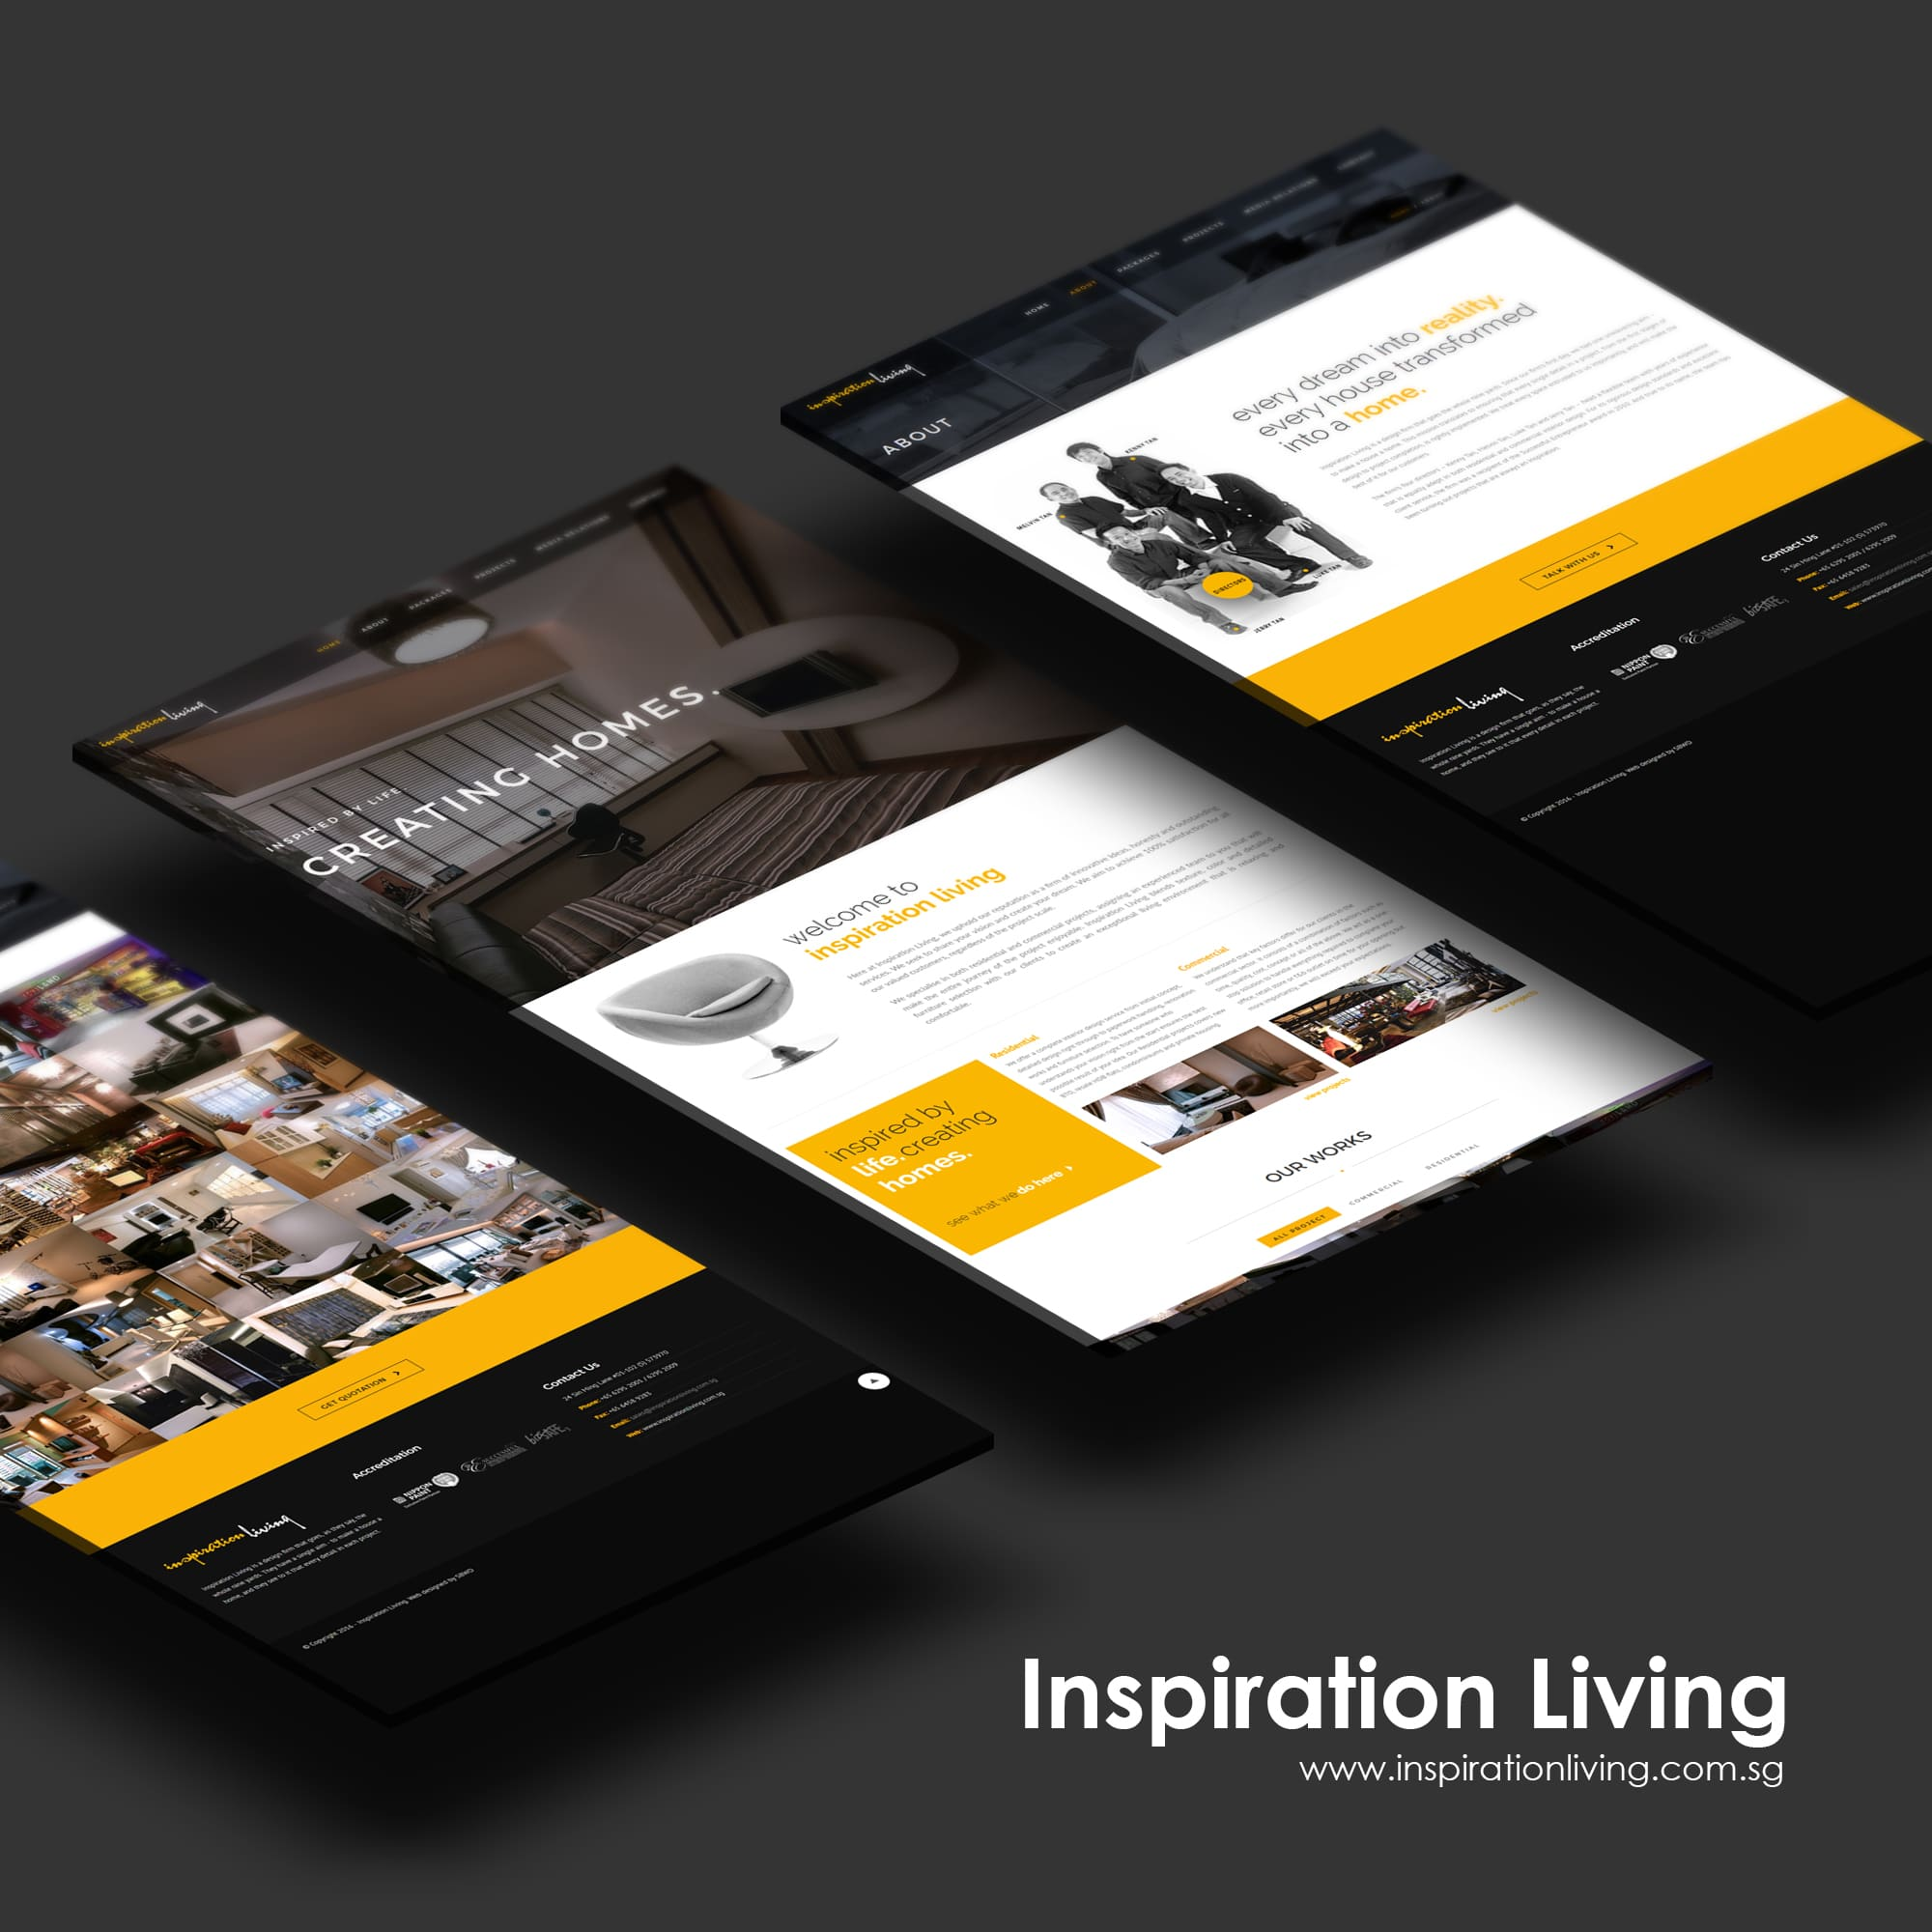 sbwd - inspiration living web concept